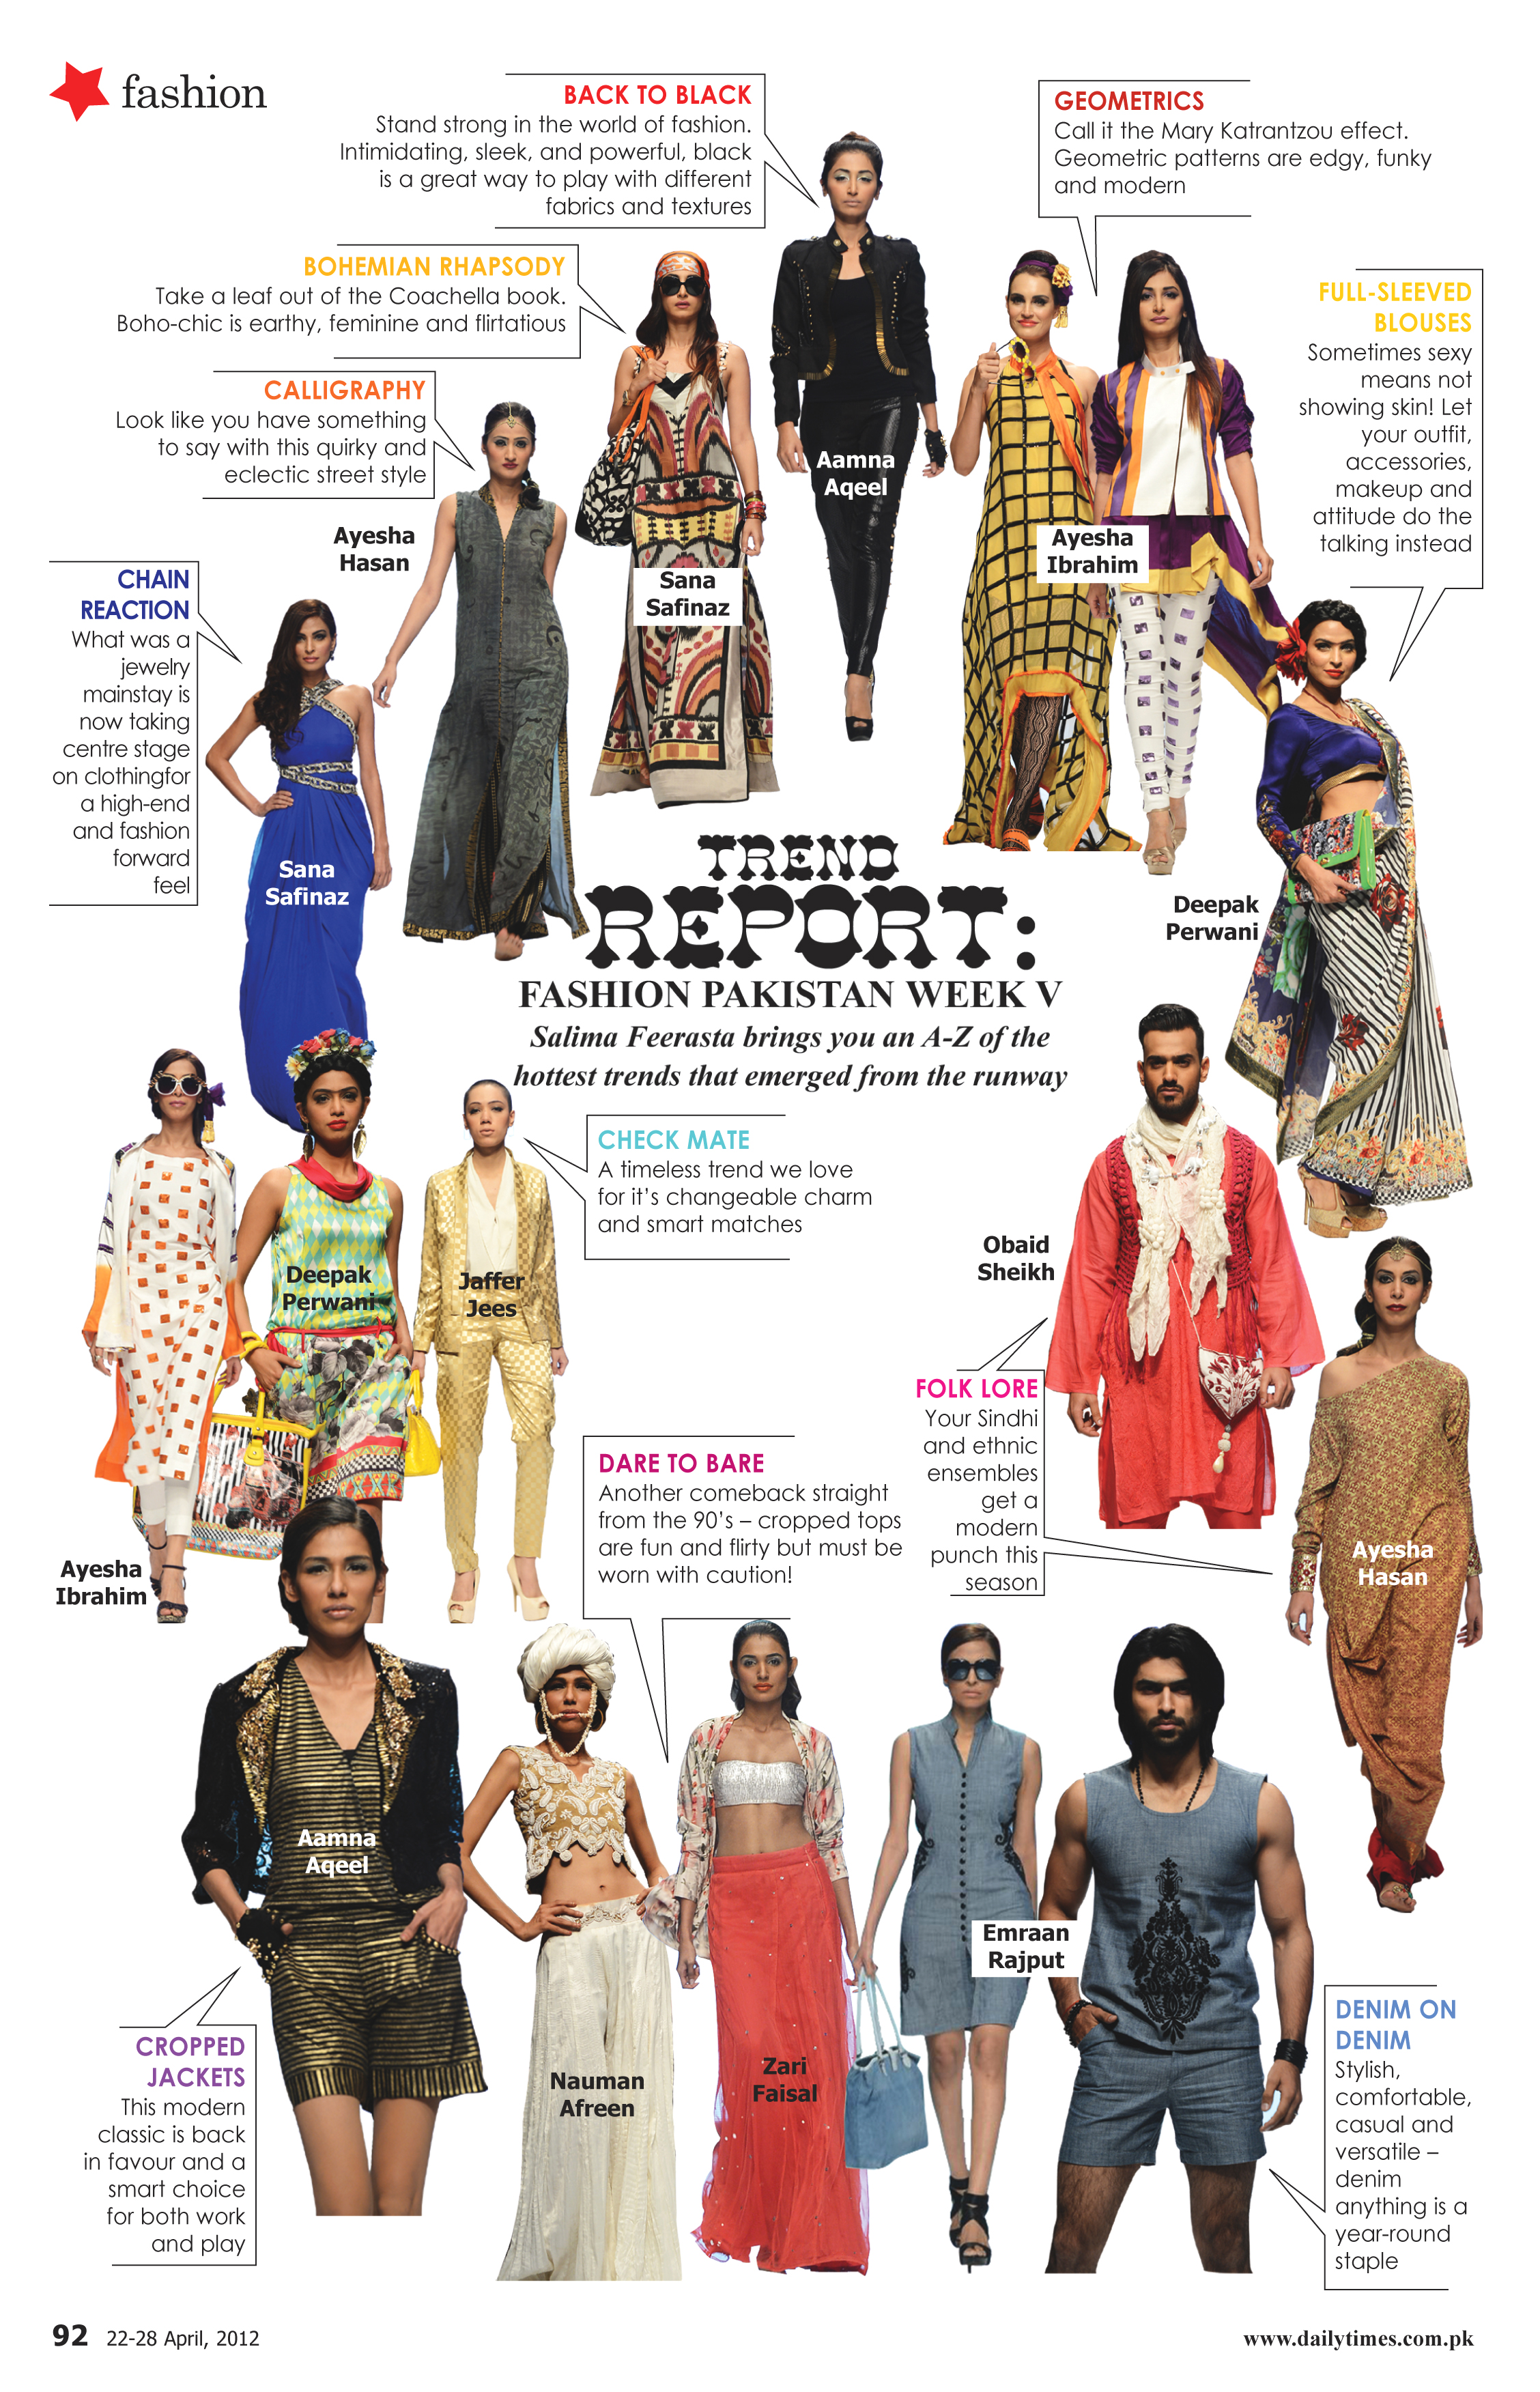 We Love Sunday Magazine S Trend Report On Fashion Pakistan Week Karachi Style On Paper